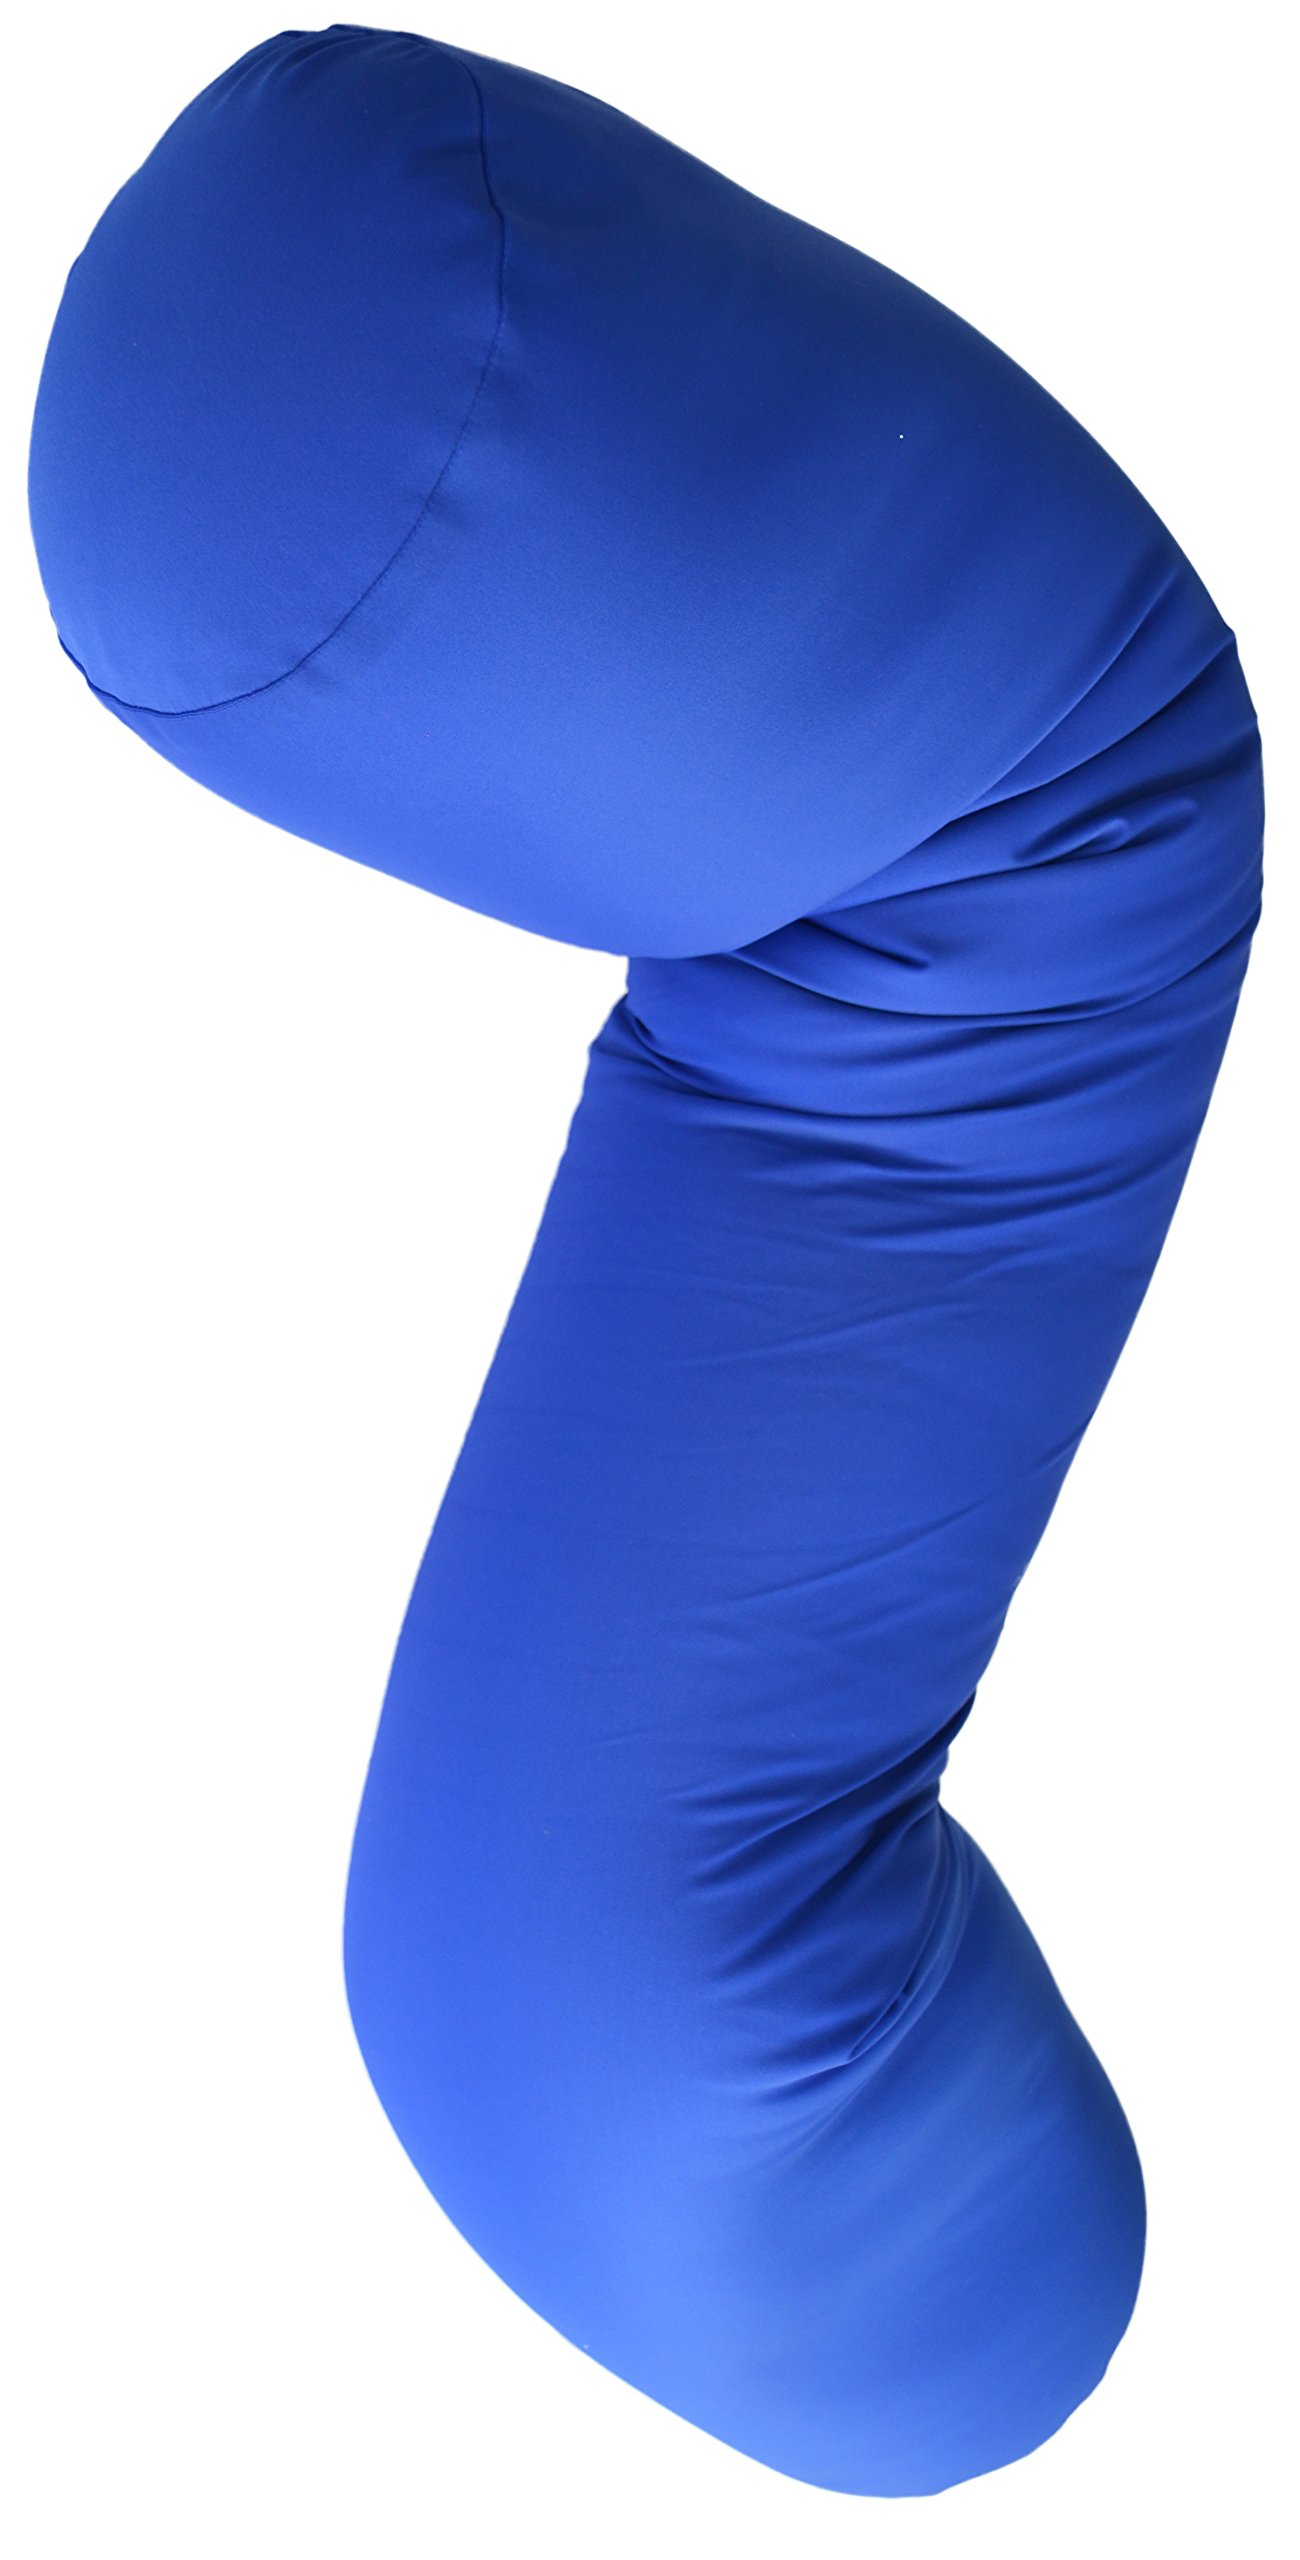 Squishy Deluxe Microbead Body Pillow with Silky Smooth Removable Cover Extremely Huggable & Hypoallergenic, Doubles as a Pregnancy & Nursing Pillow; 47'' X 7''; Navy Blue